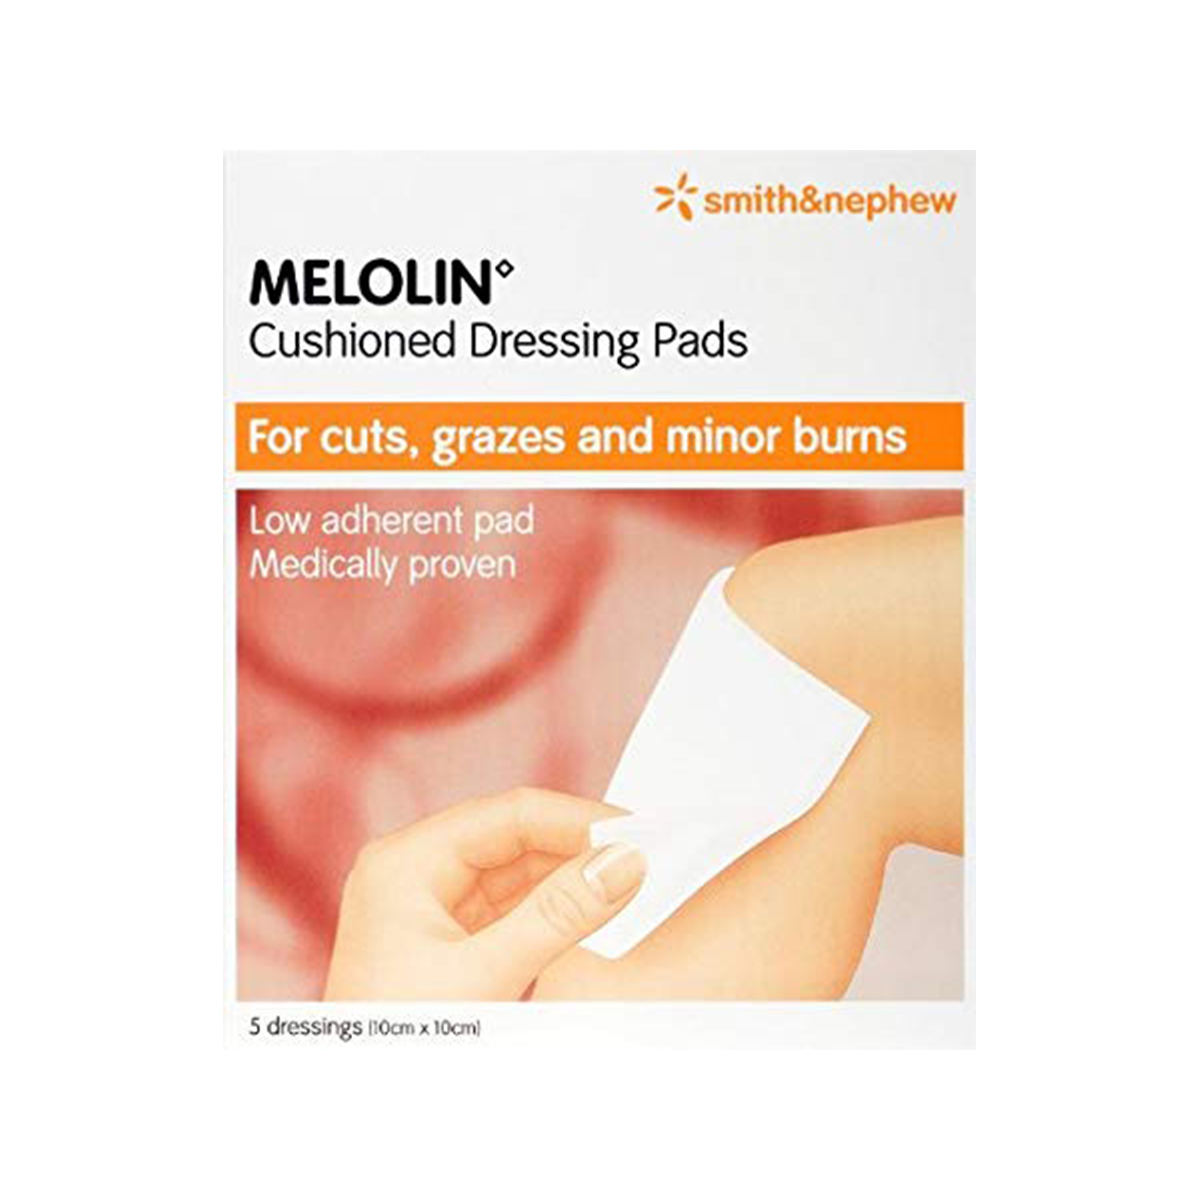 Pack of 5 10cm x 10cm Melolin Cushioned Dressing Pad